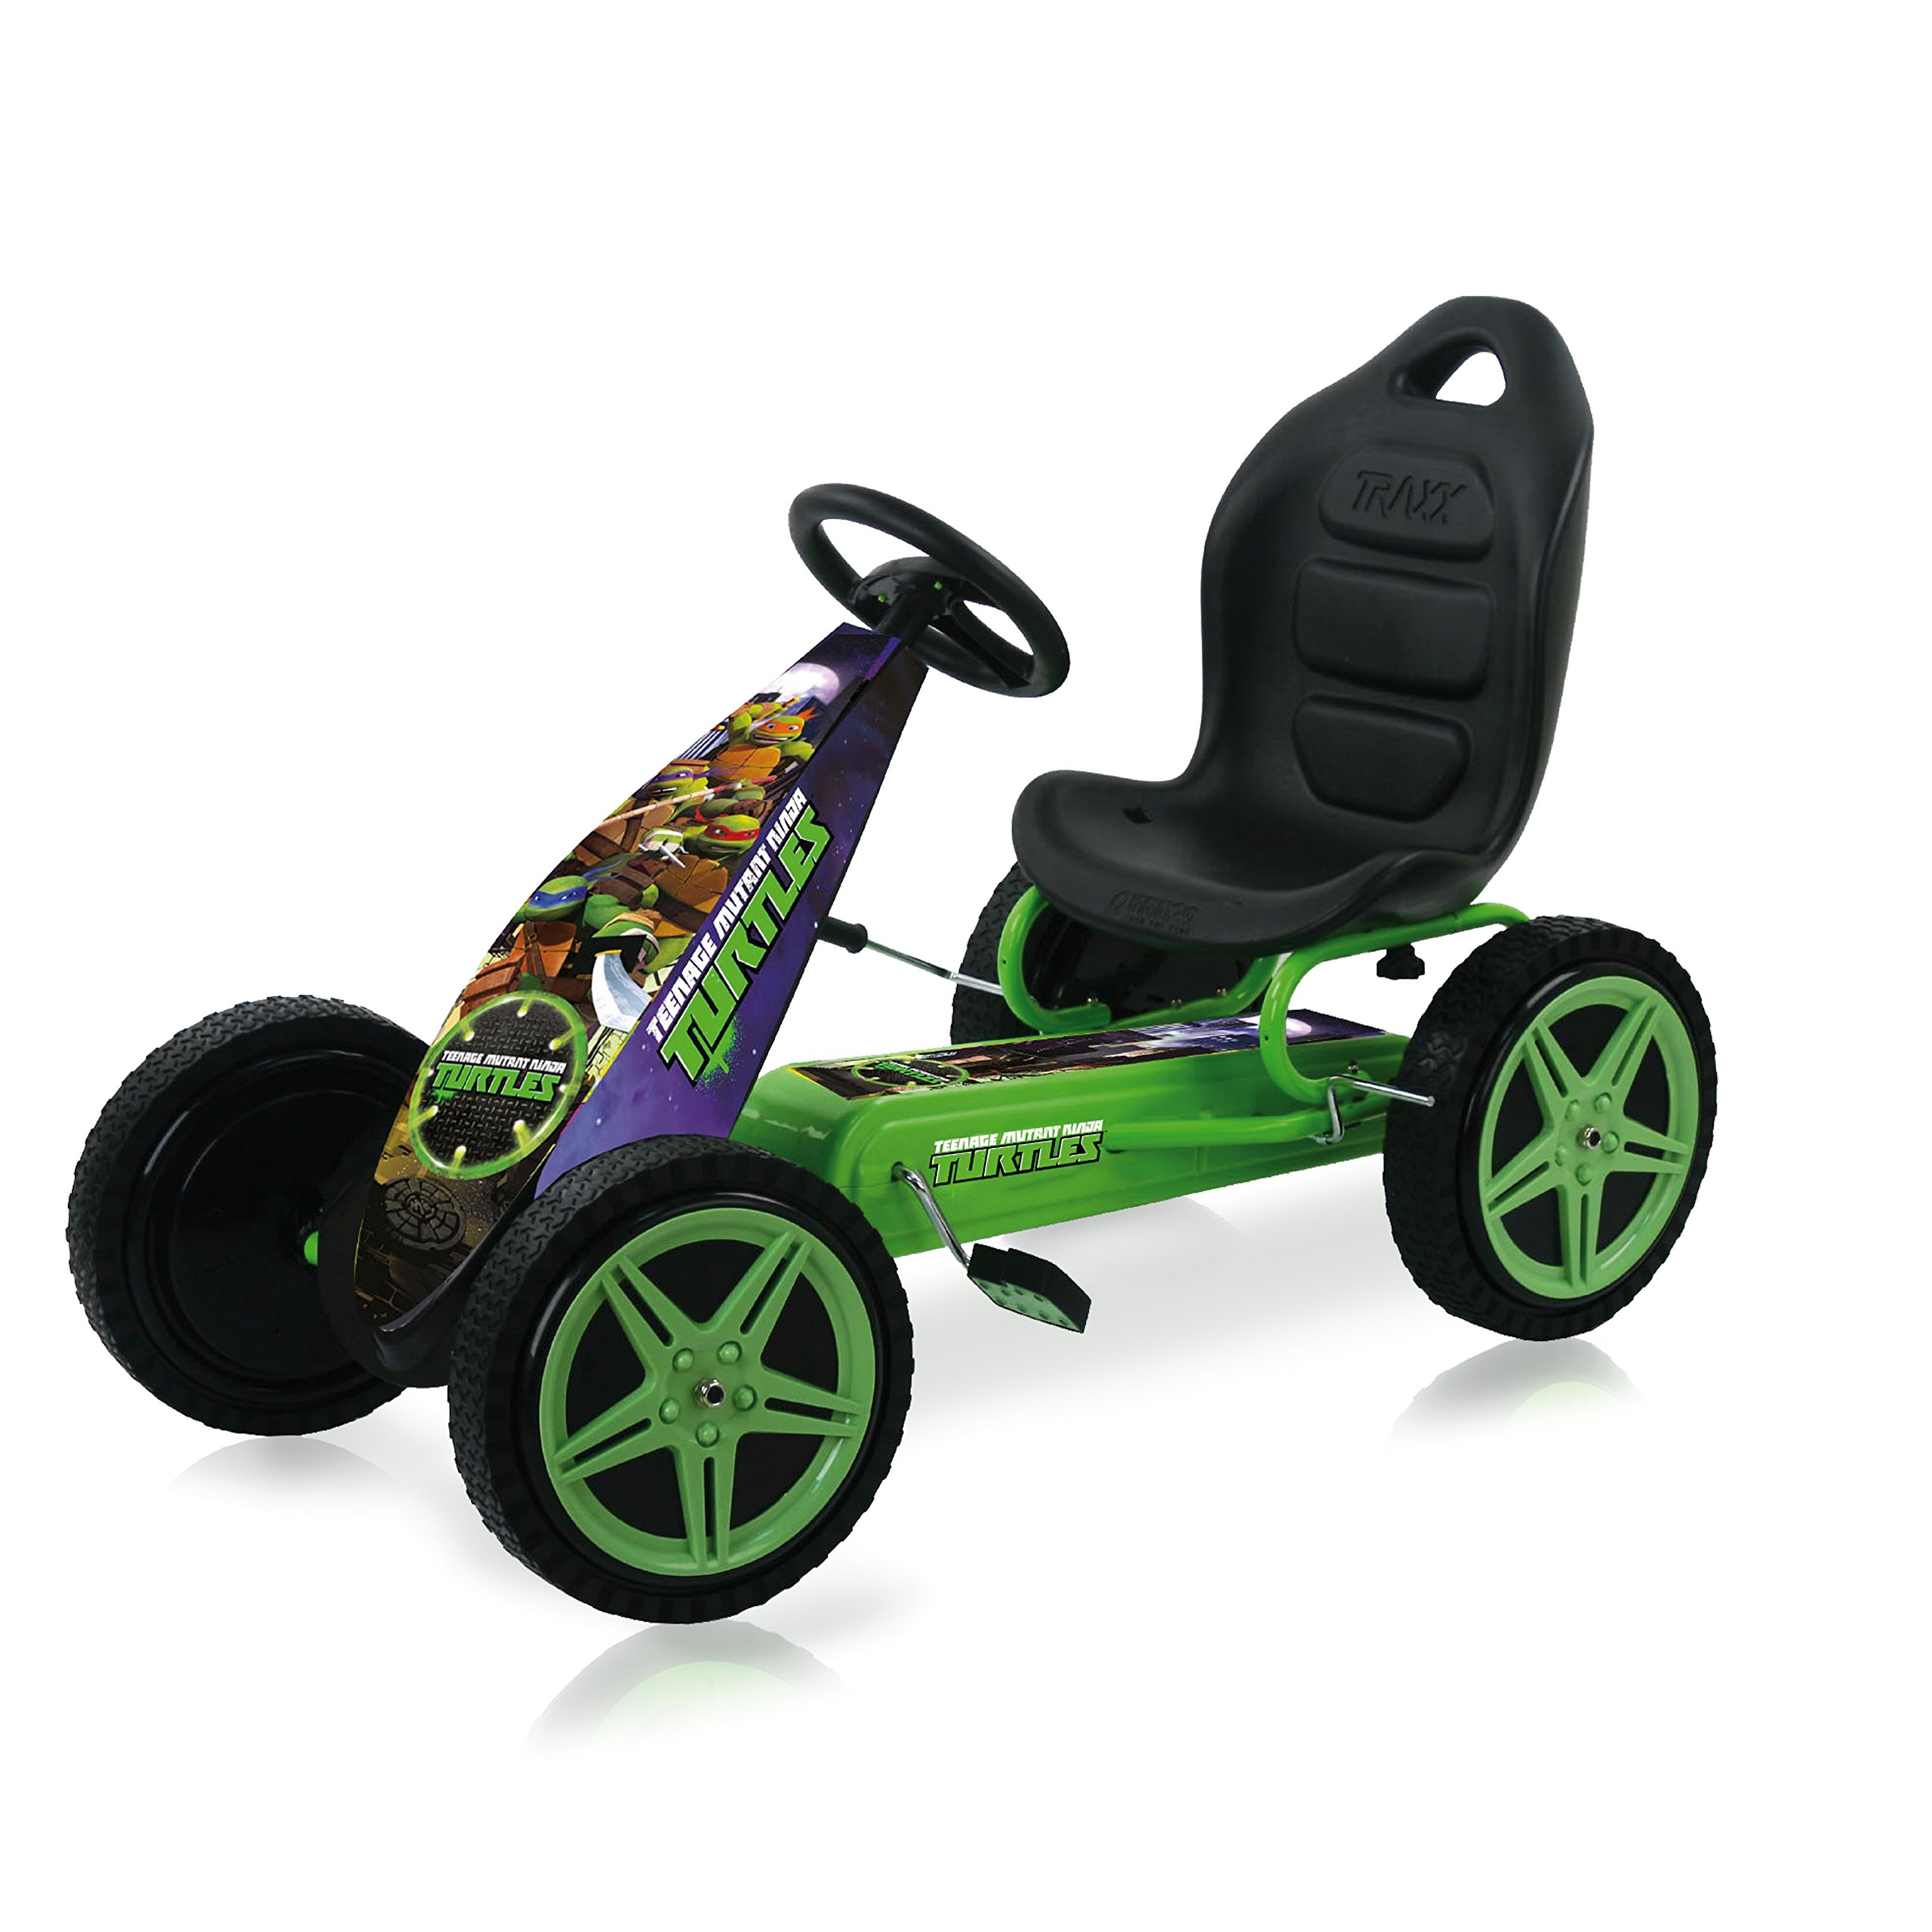 Hauck Teenage Mutant Ninja Turtles' Go Kart